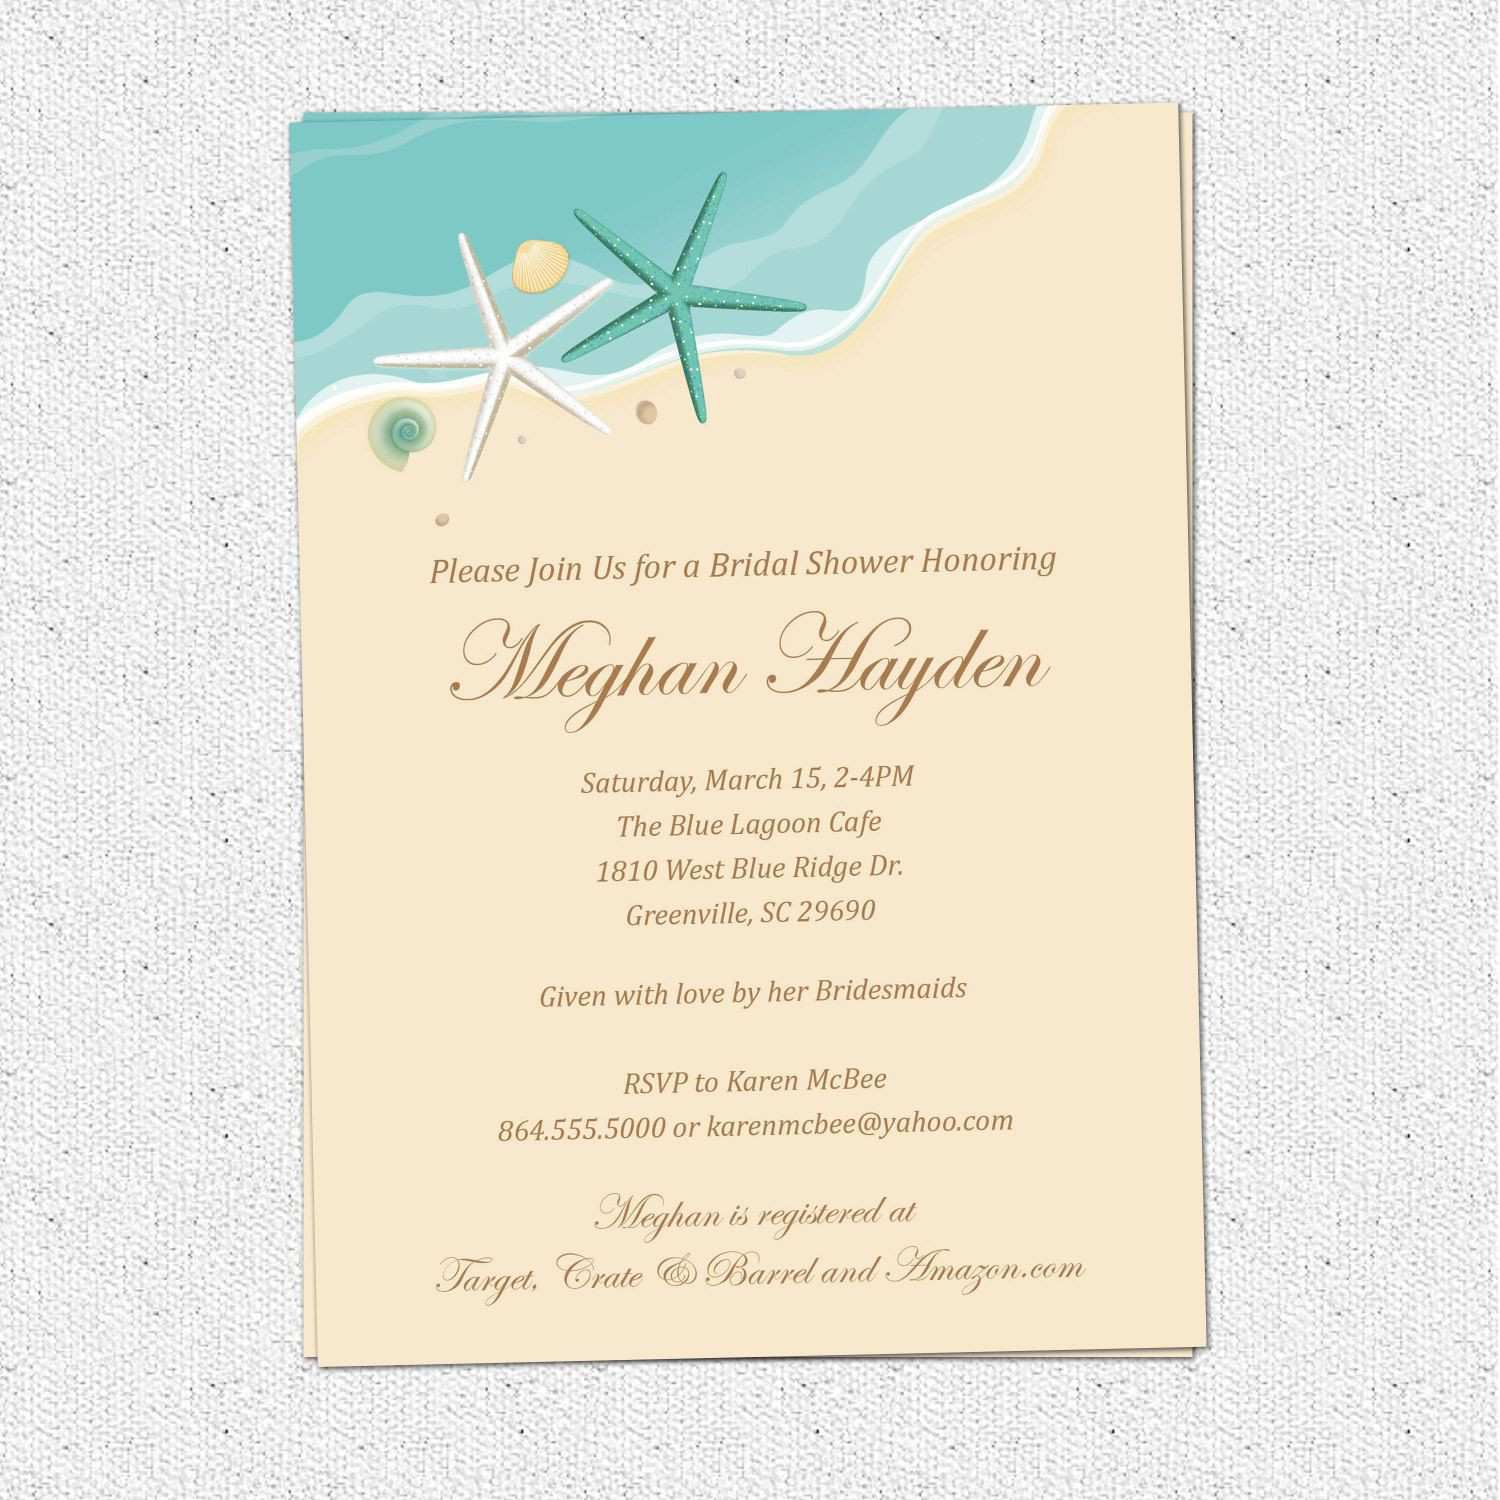 000 Top Beach Wedding Invitation Template Picture  Templates Free Download For WordFull